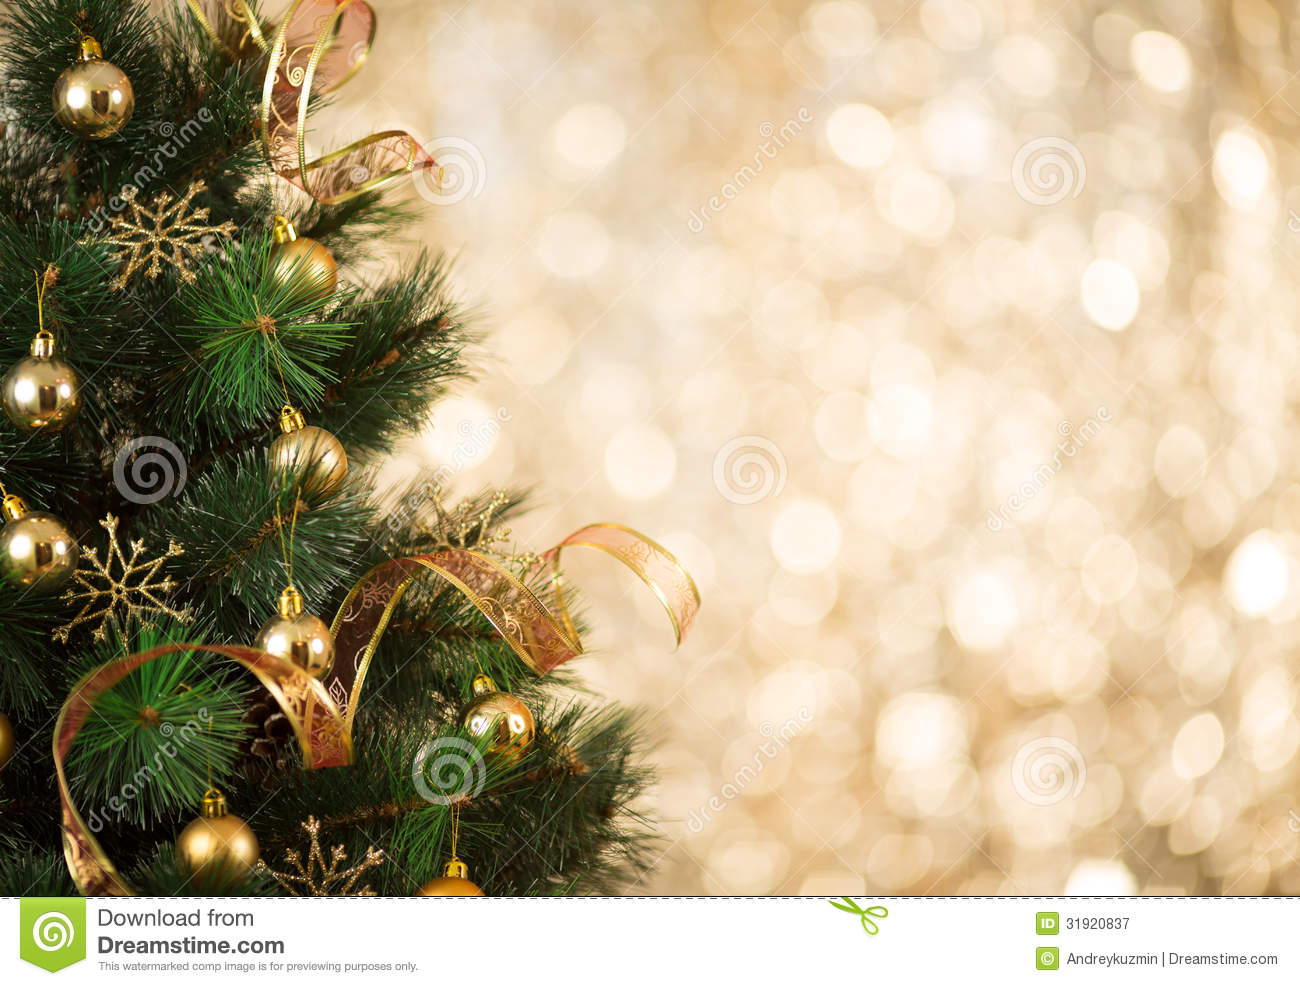 1300x986 - Christmas Trees Backgrounds 10